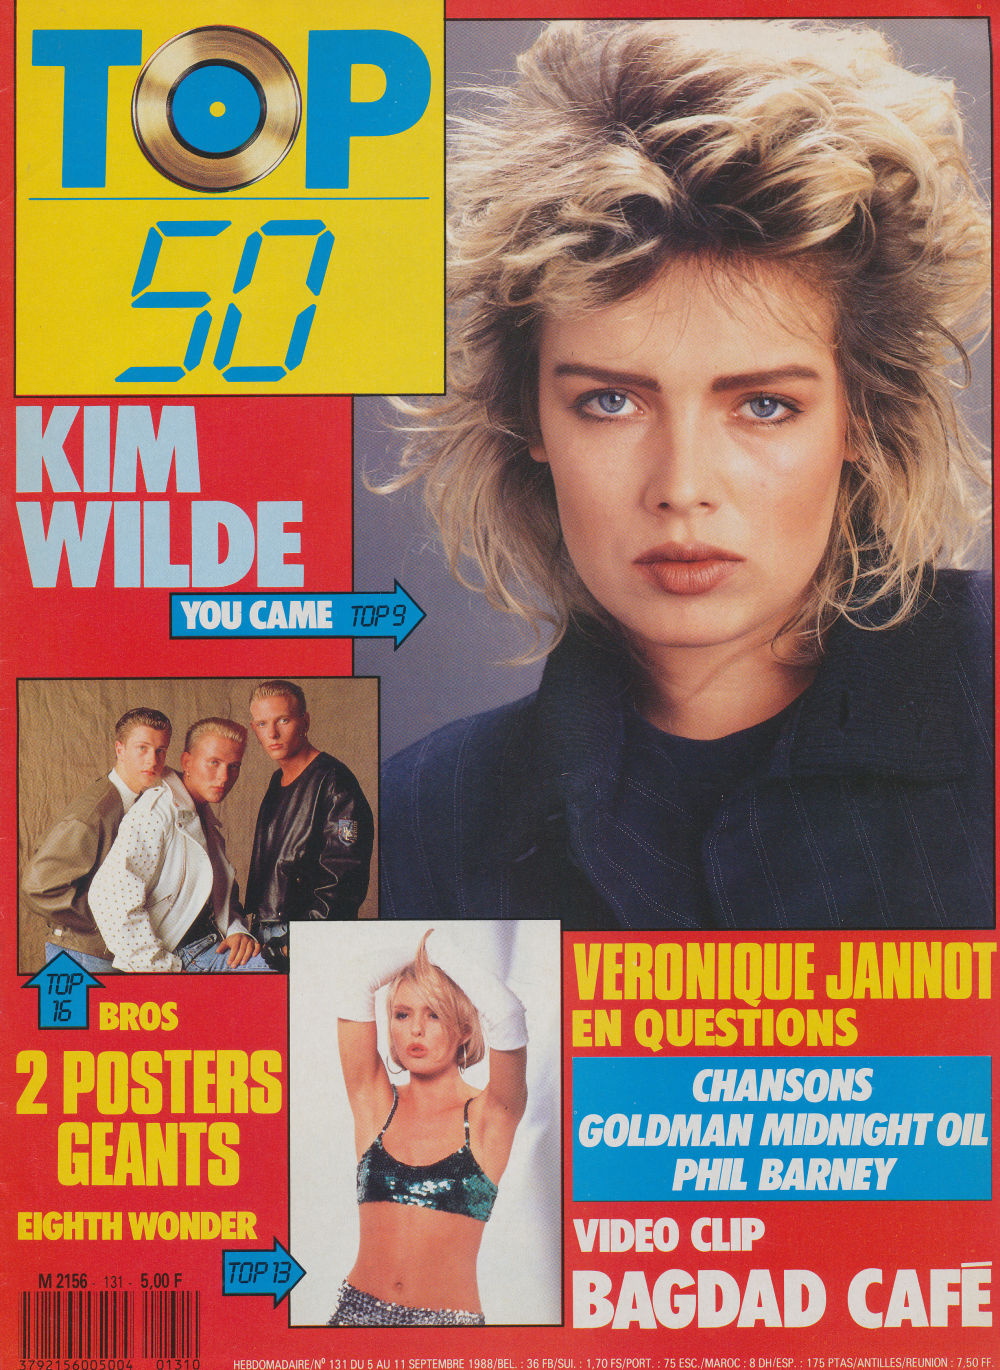 Top 50 Most Beautiful Teen Actresses List: A Blonde At The Top: Kim Wilde